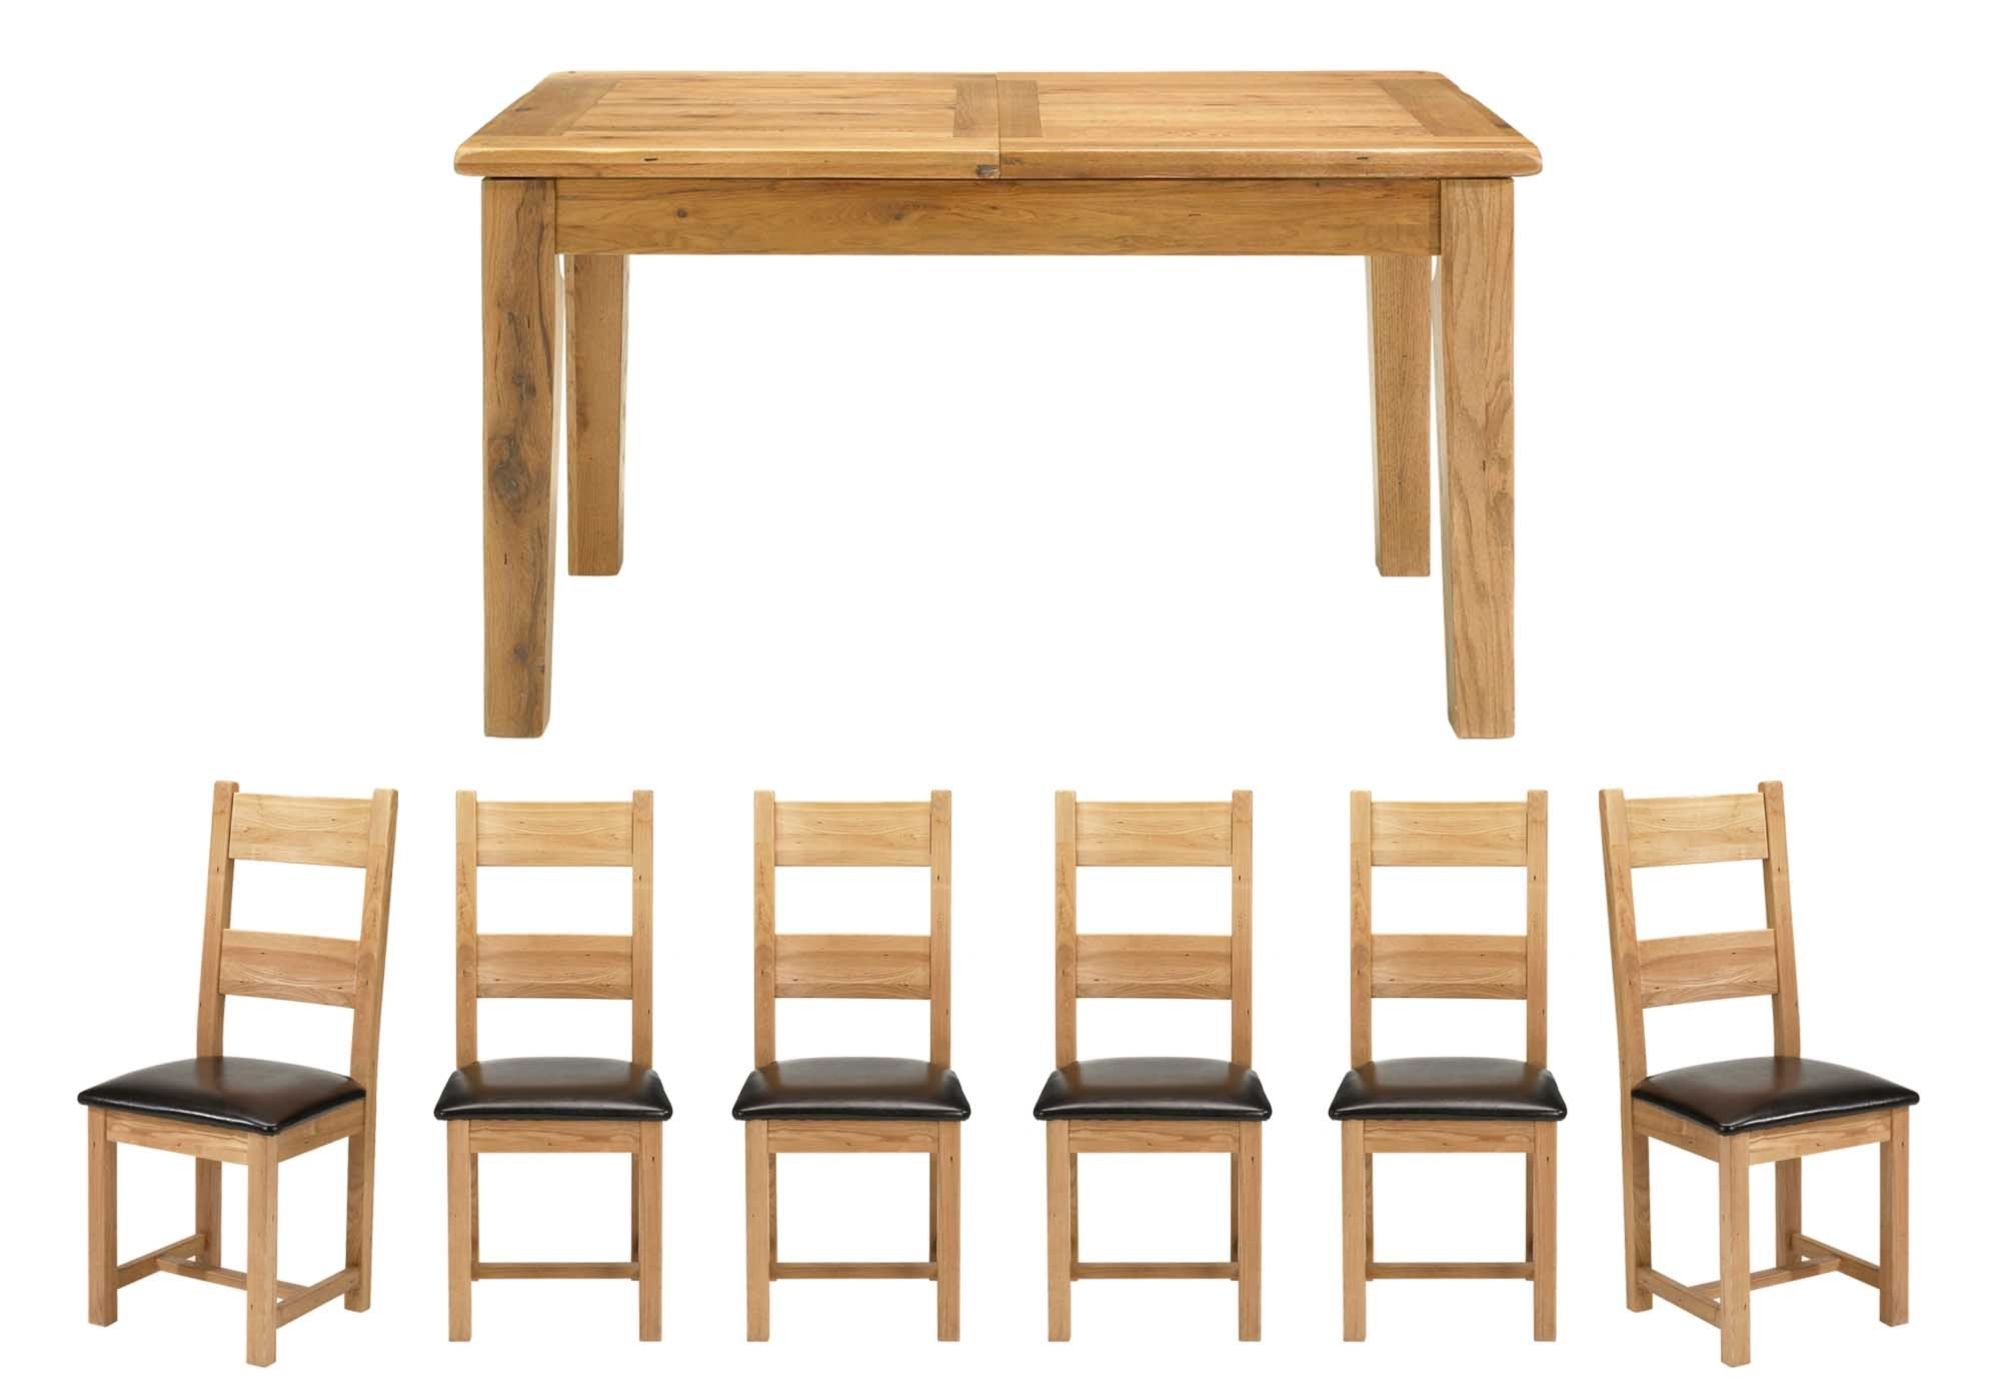 Lyon Oak Bedroom Furniture Extending Table 6 Wooden Chairs Lyon Dining Tables And